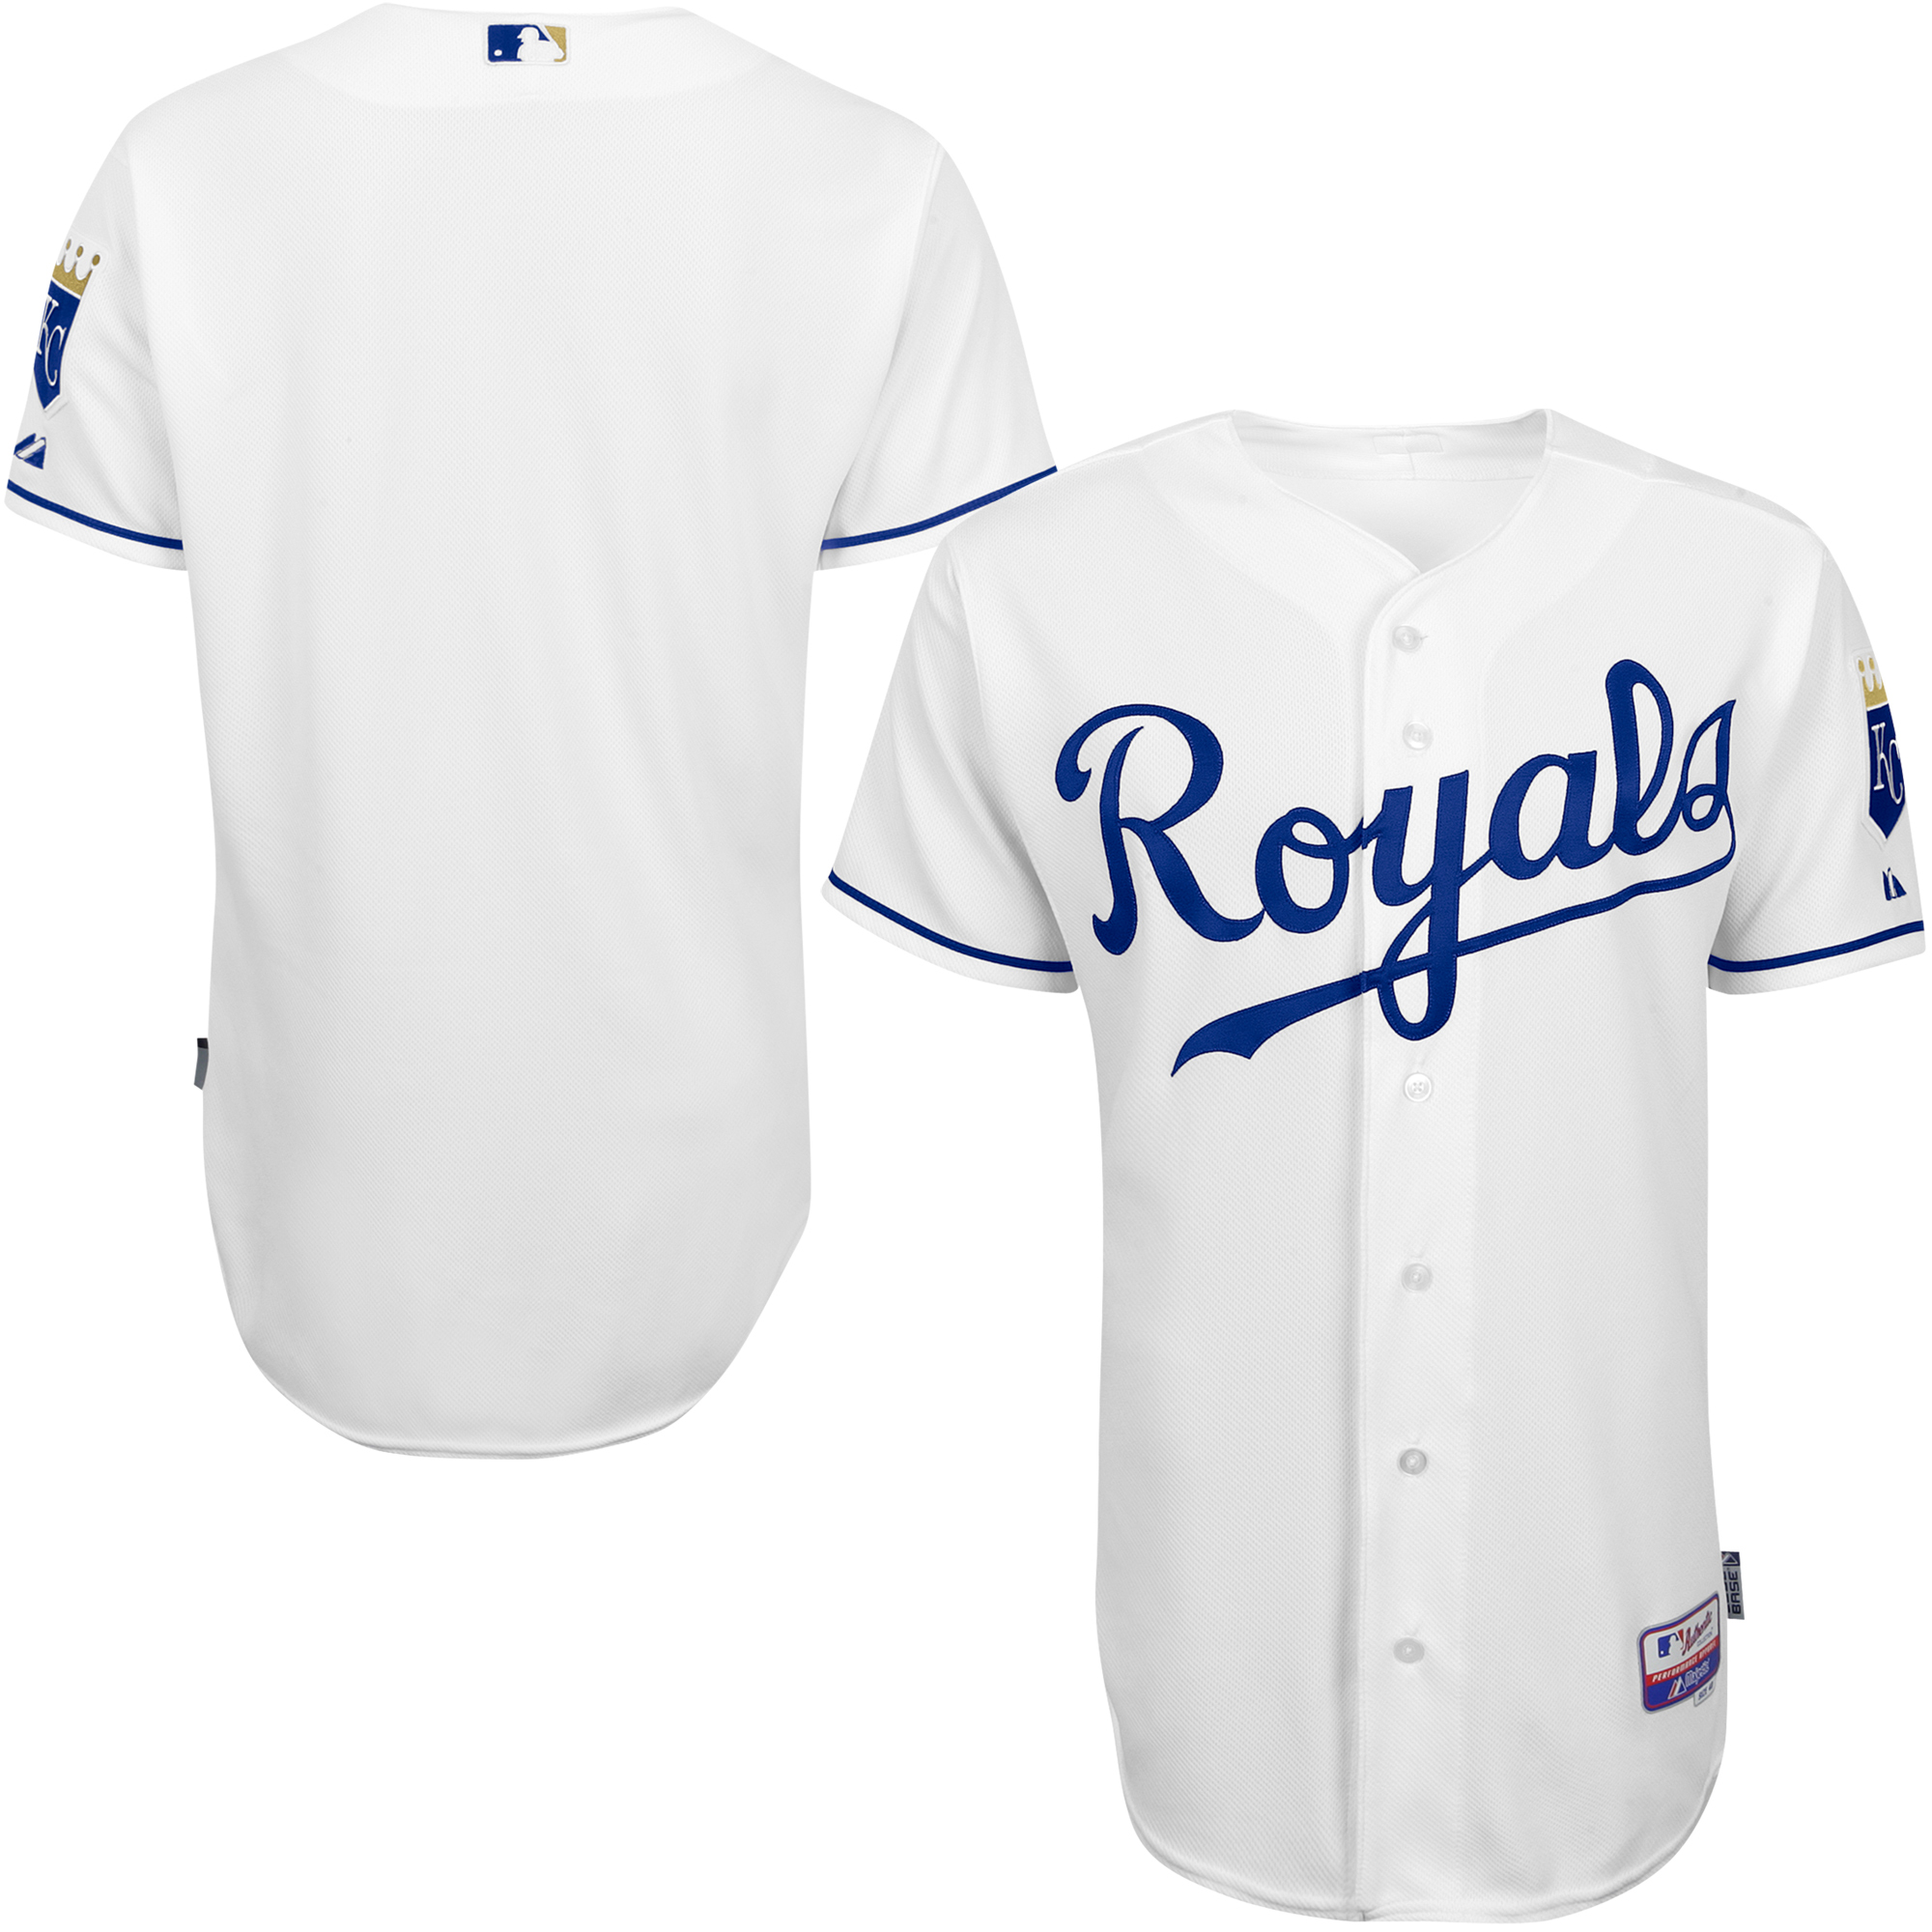 Kansas City Royals Majestic Home 6300 Team Authentic Jersey - White